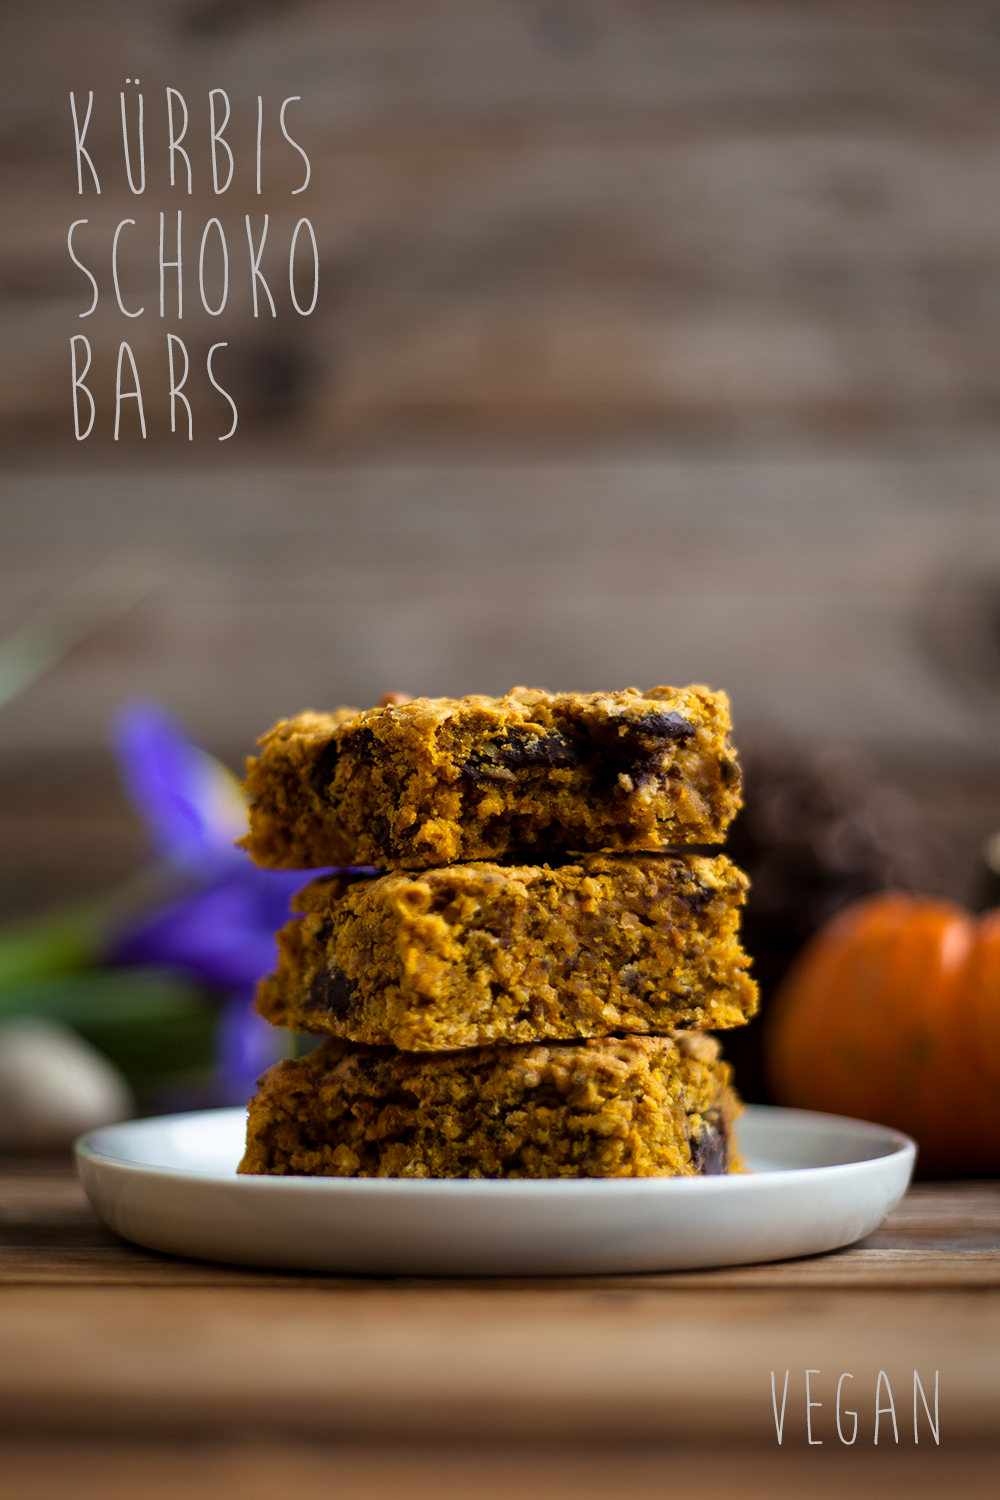 Schoko Kürbis bars vegan pinterest